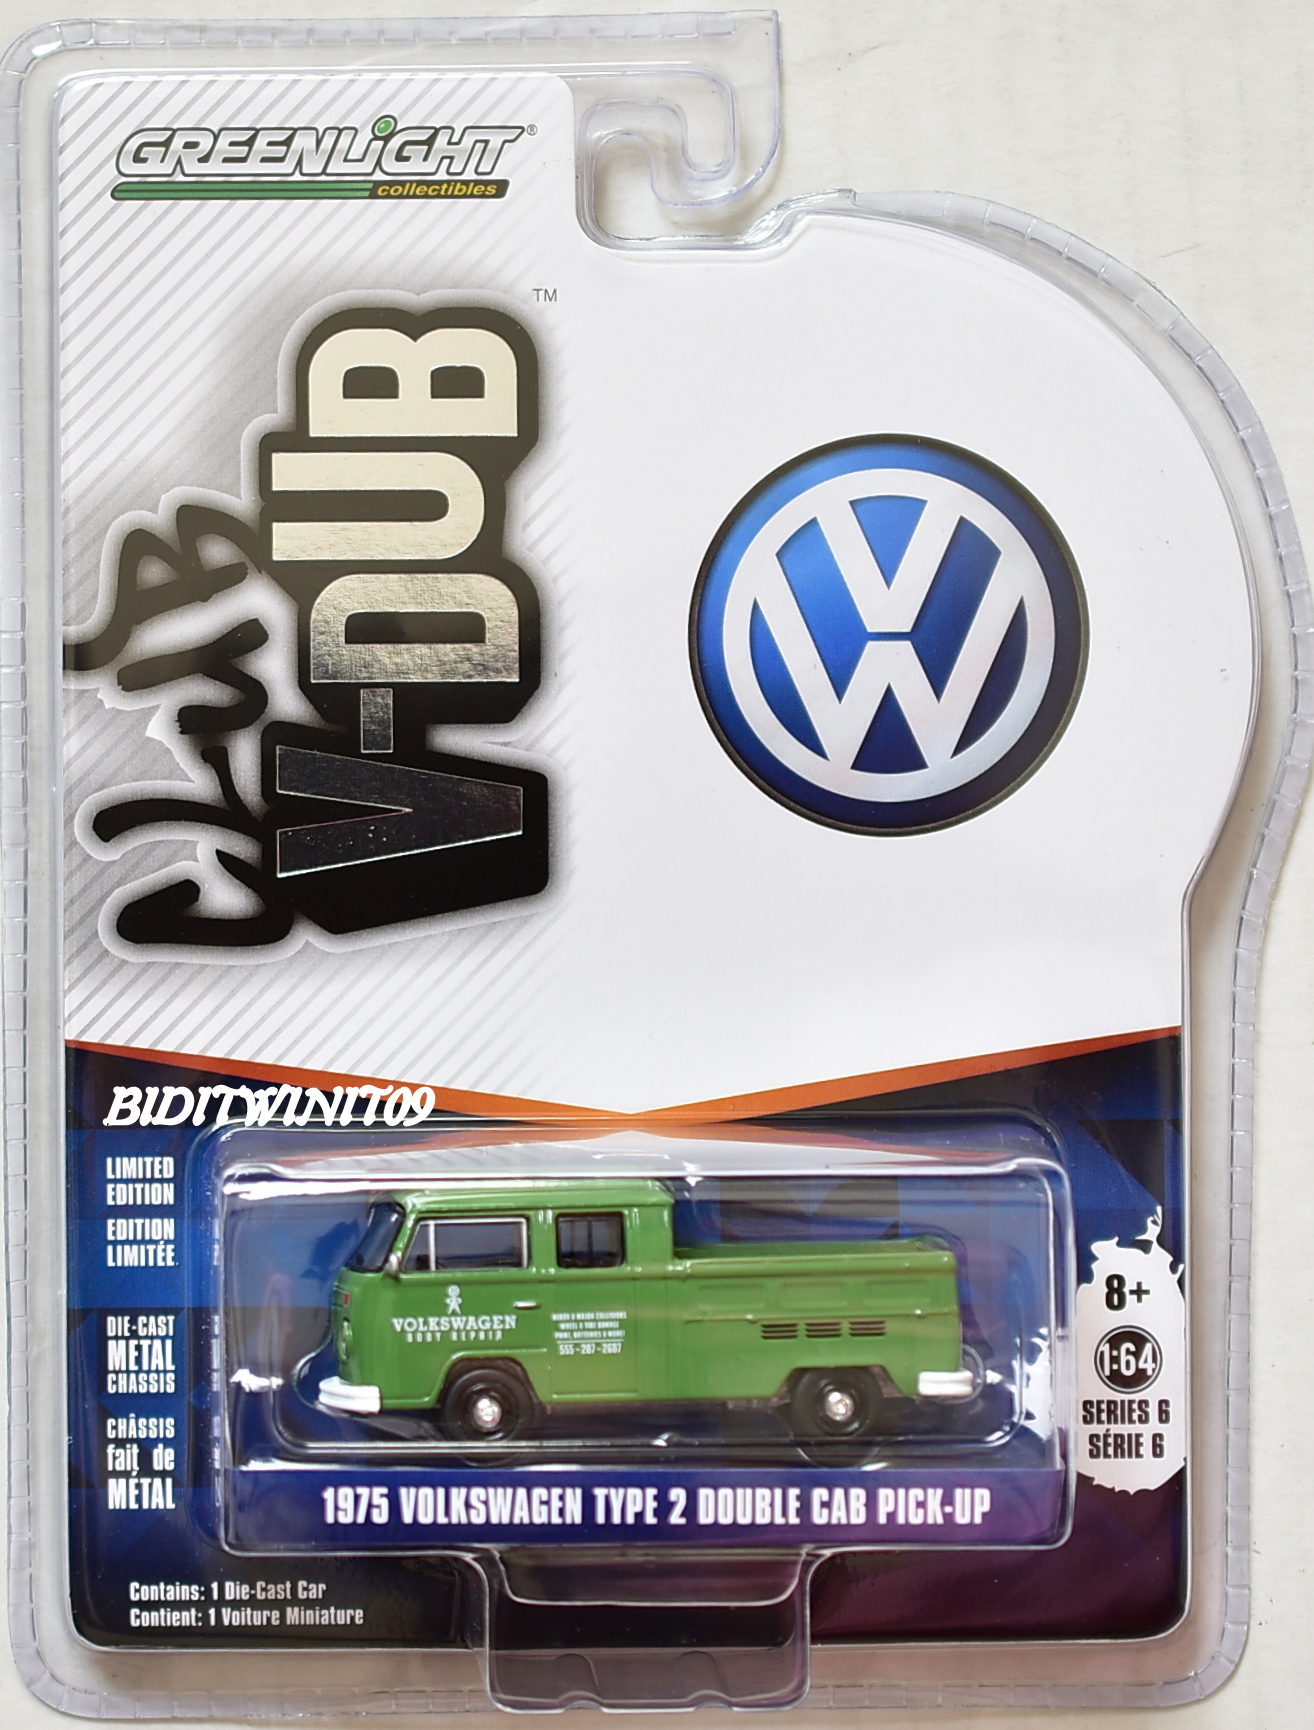 GREENLIGHT CLUB V-DUB 2018 SERIES 6 1975 VOLKSWAGEN TYPE 2 DOUBLE CAB PICK-UP